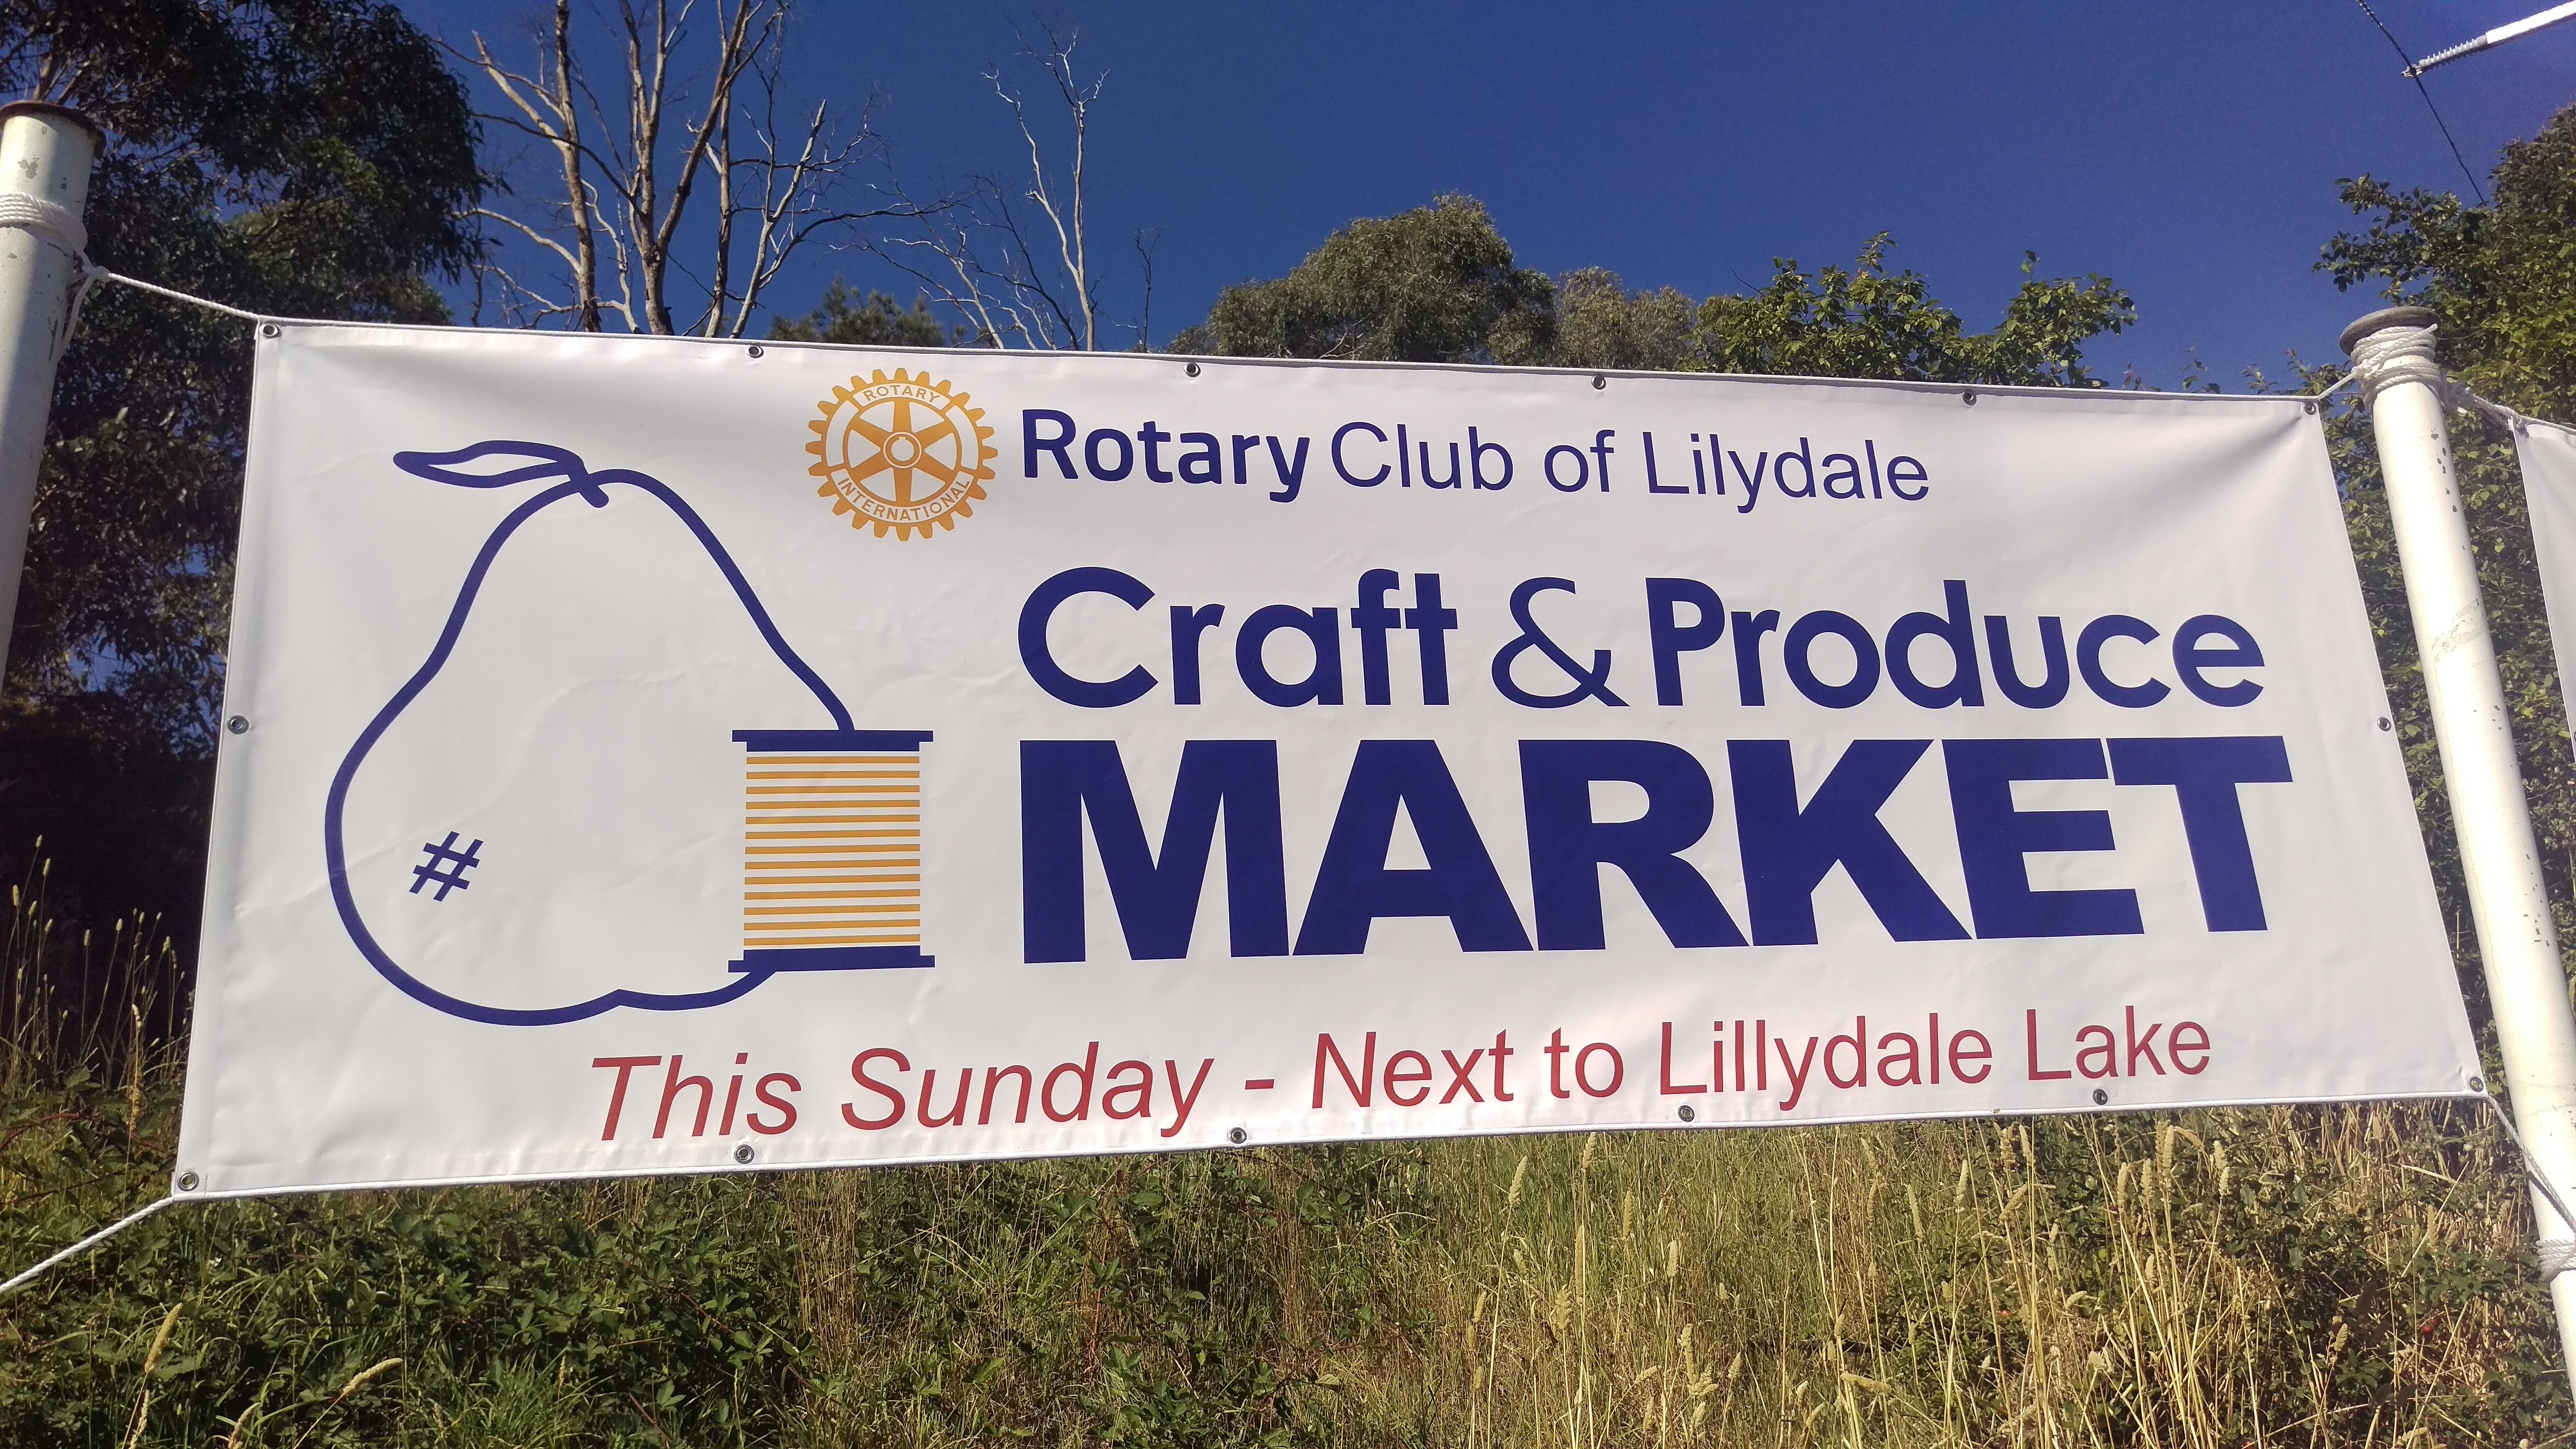 Rotary Club of Lilydale Craft and Produce Market - ACT Tourism